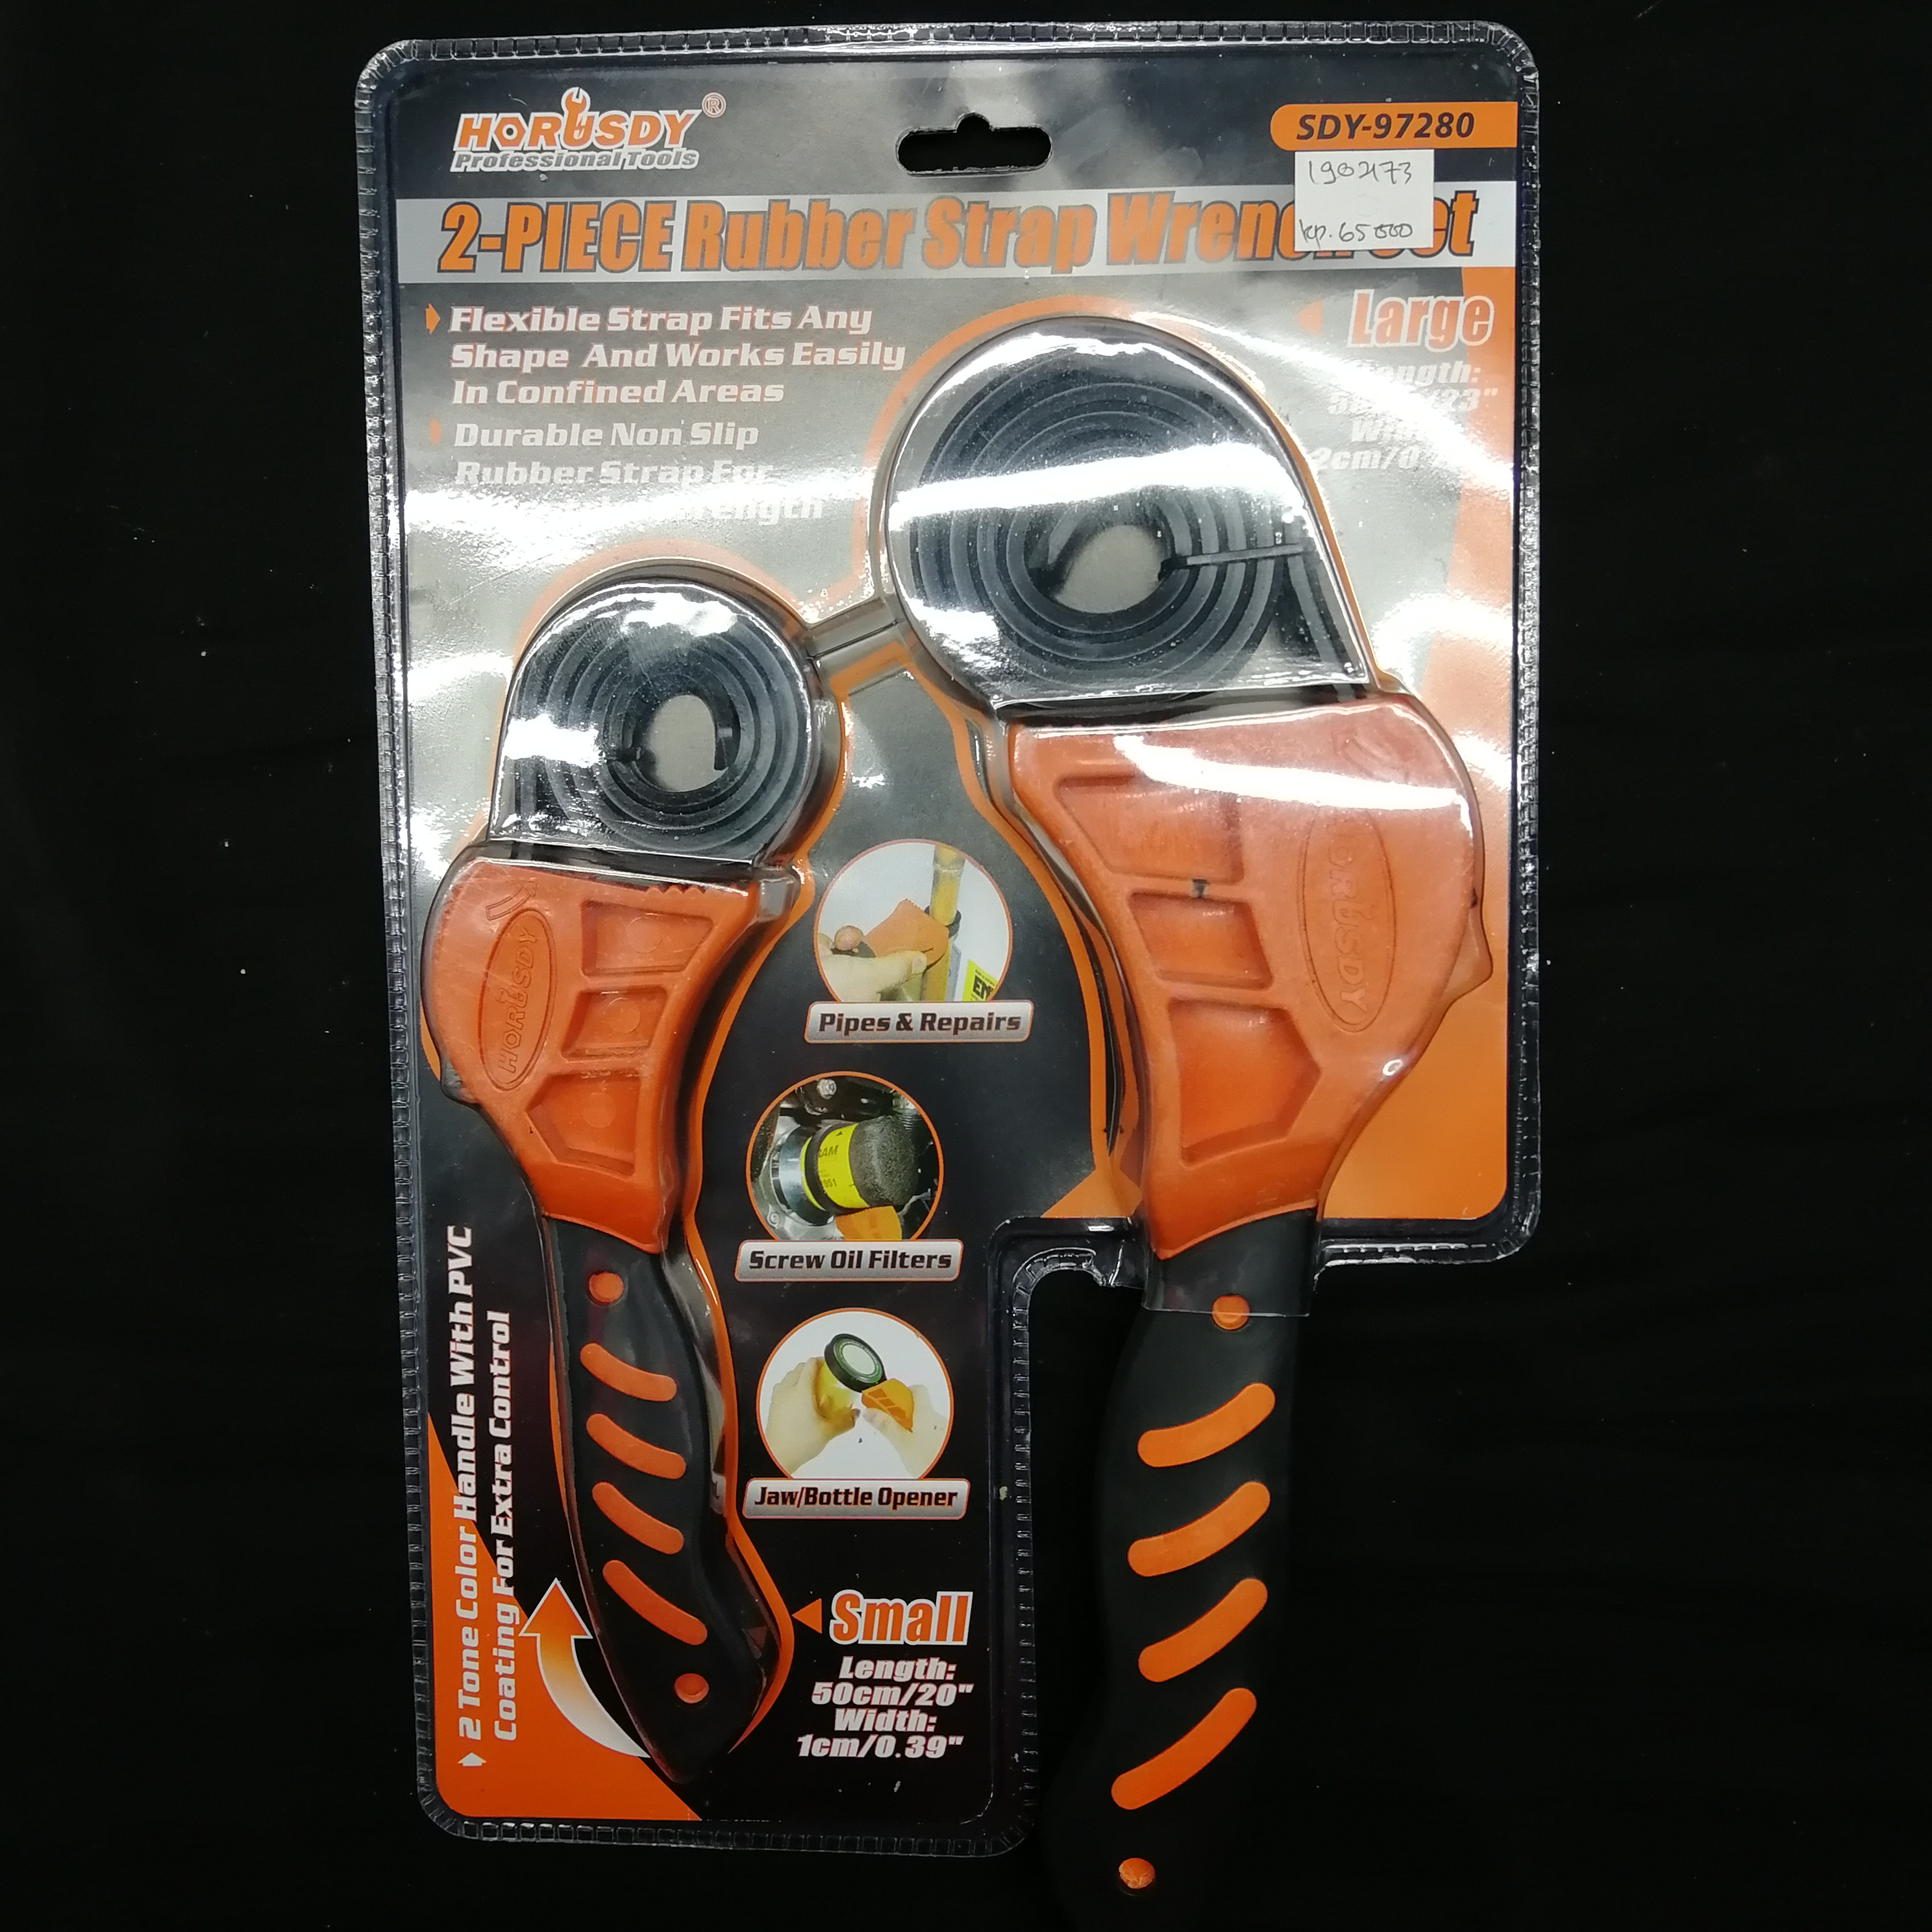 Horusdy 2-piece rubber strap wrench set